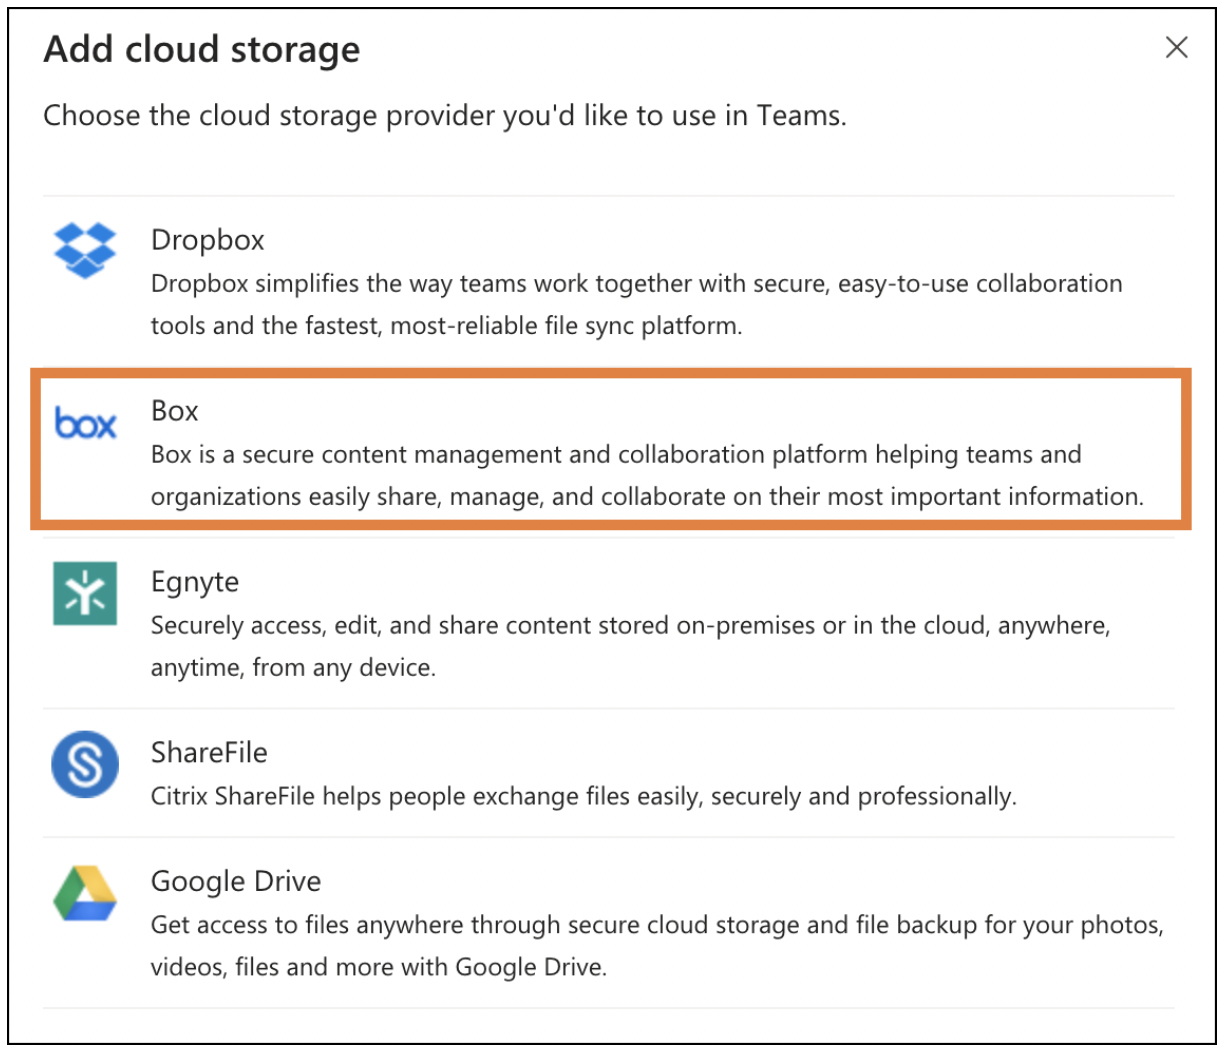 Selecting Box from the list of cloud storage options